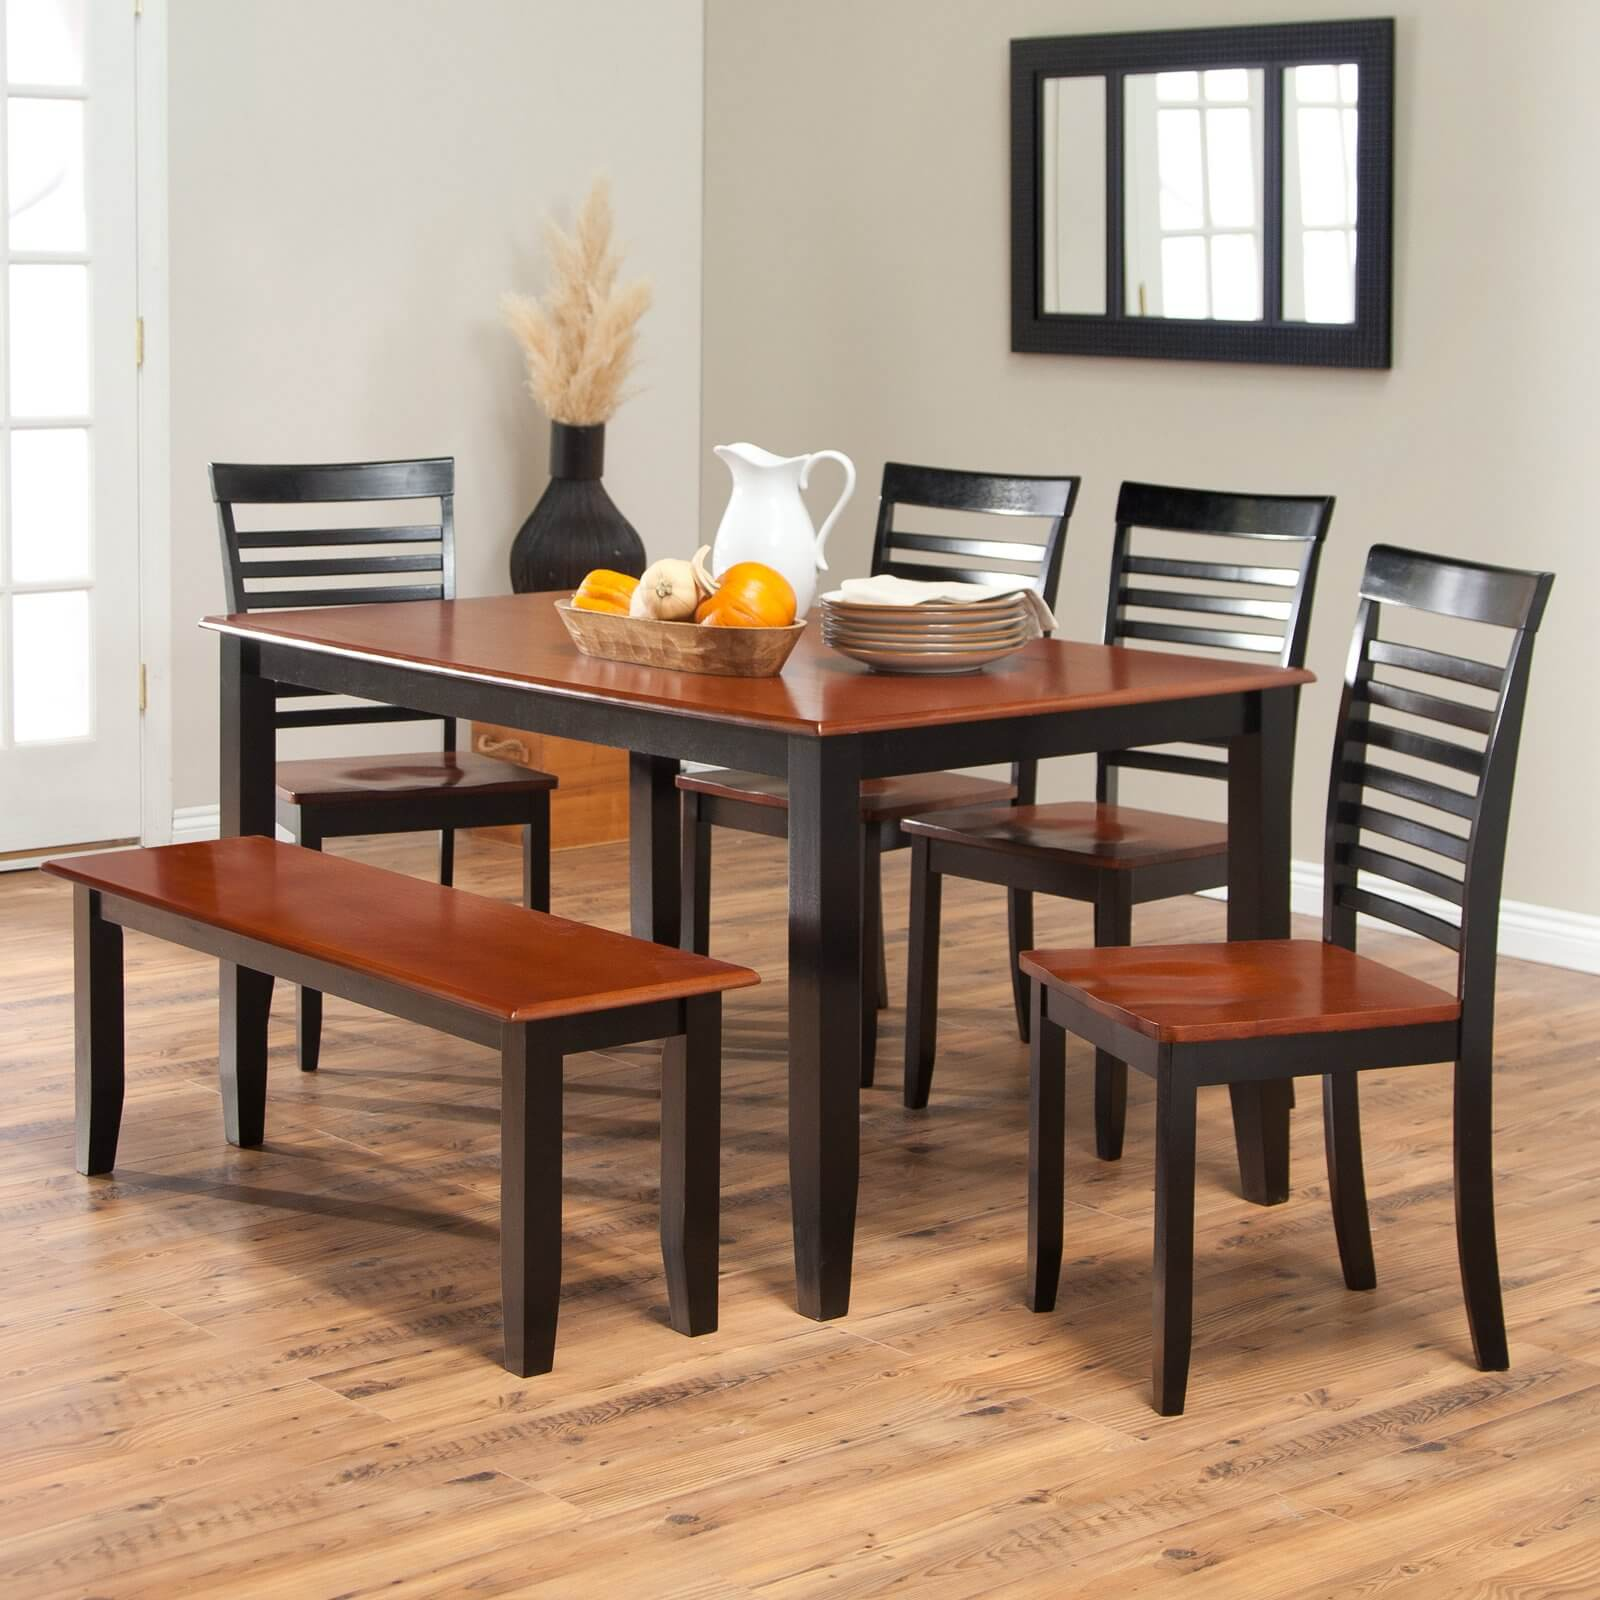 Black And Cherry Round Table And Two Dinette Chair 3 Piece: 26 Big & Small Dining Room Sets With Bench Seating